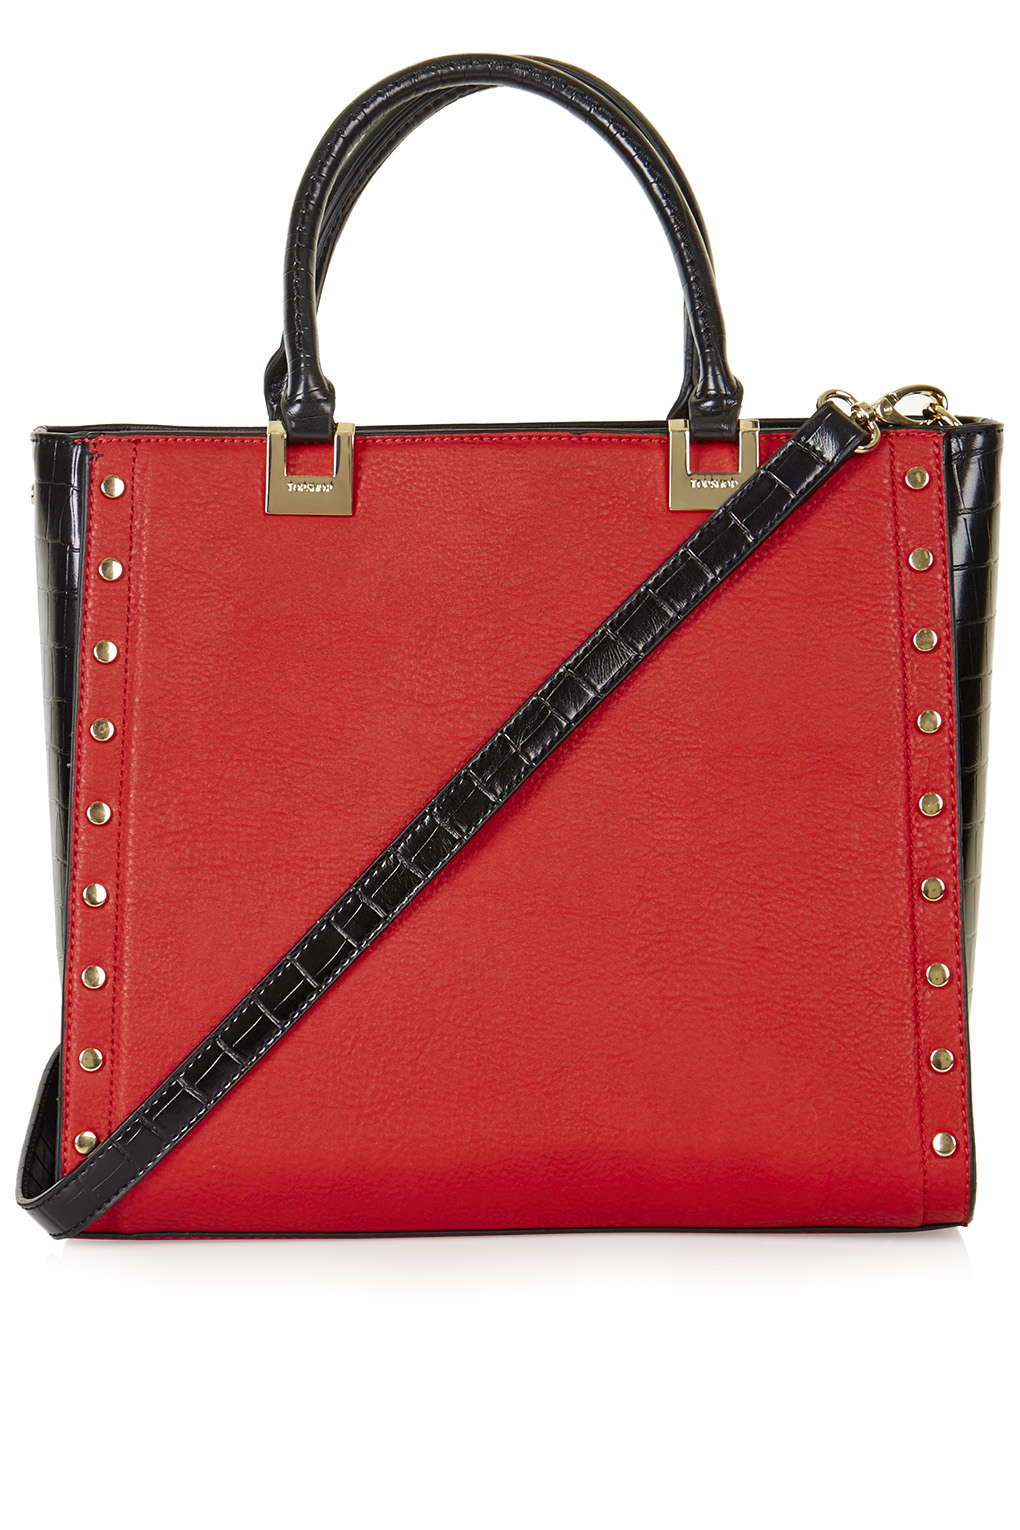 TOPSHOP Studed Top Handle Tote Bag in Red